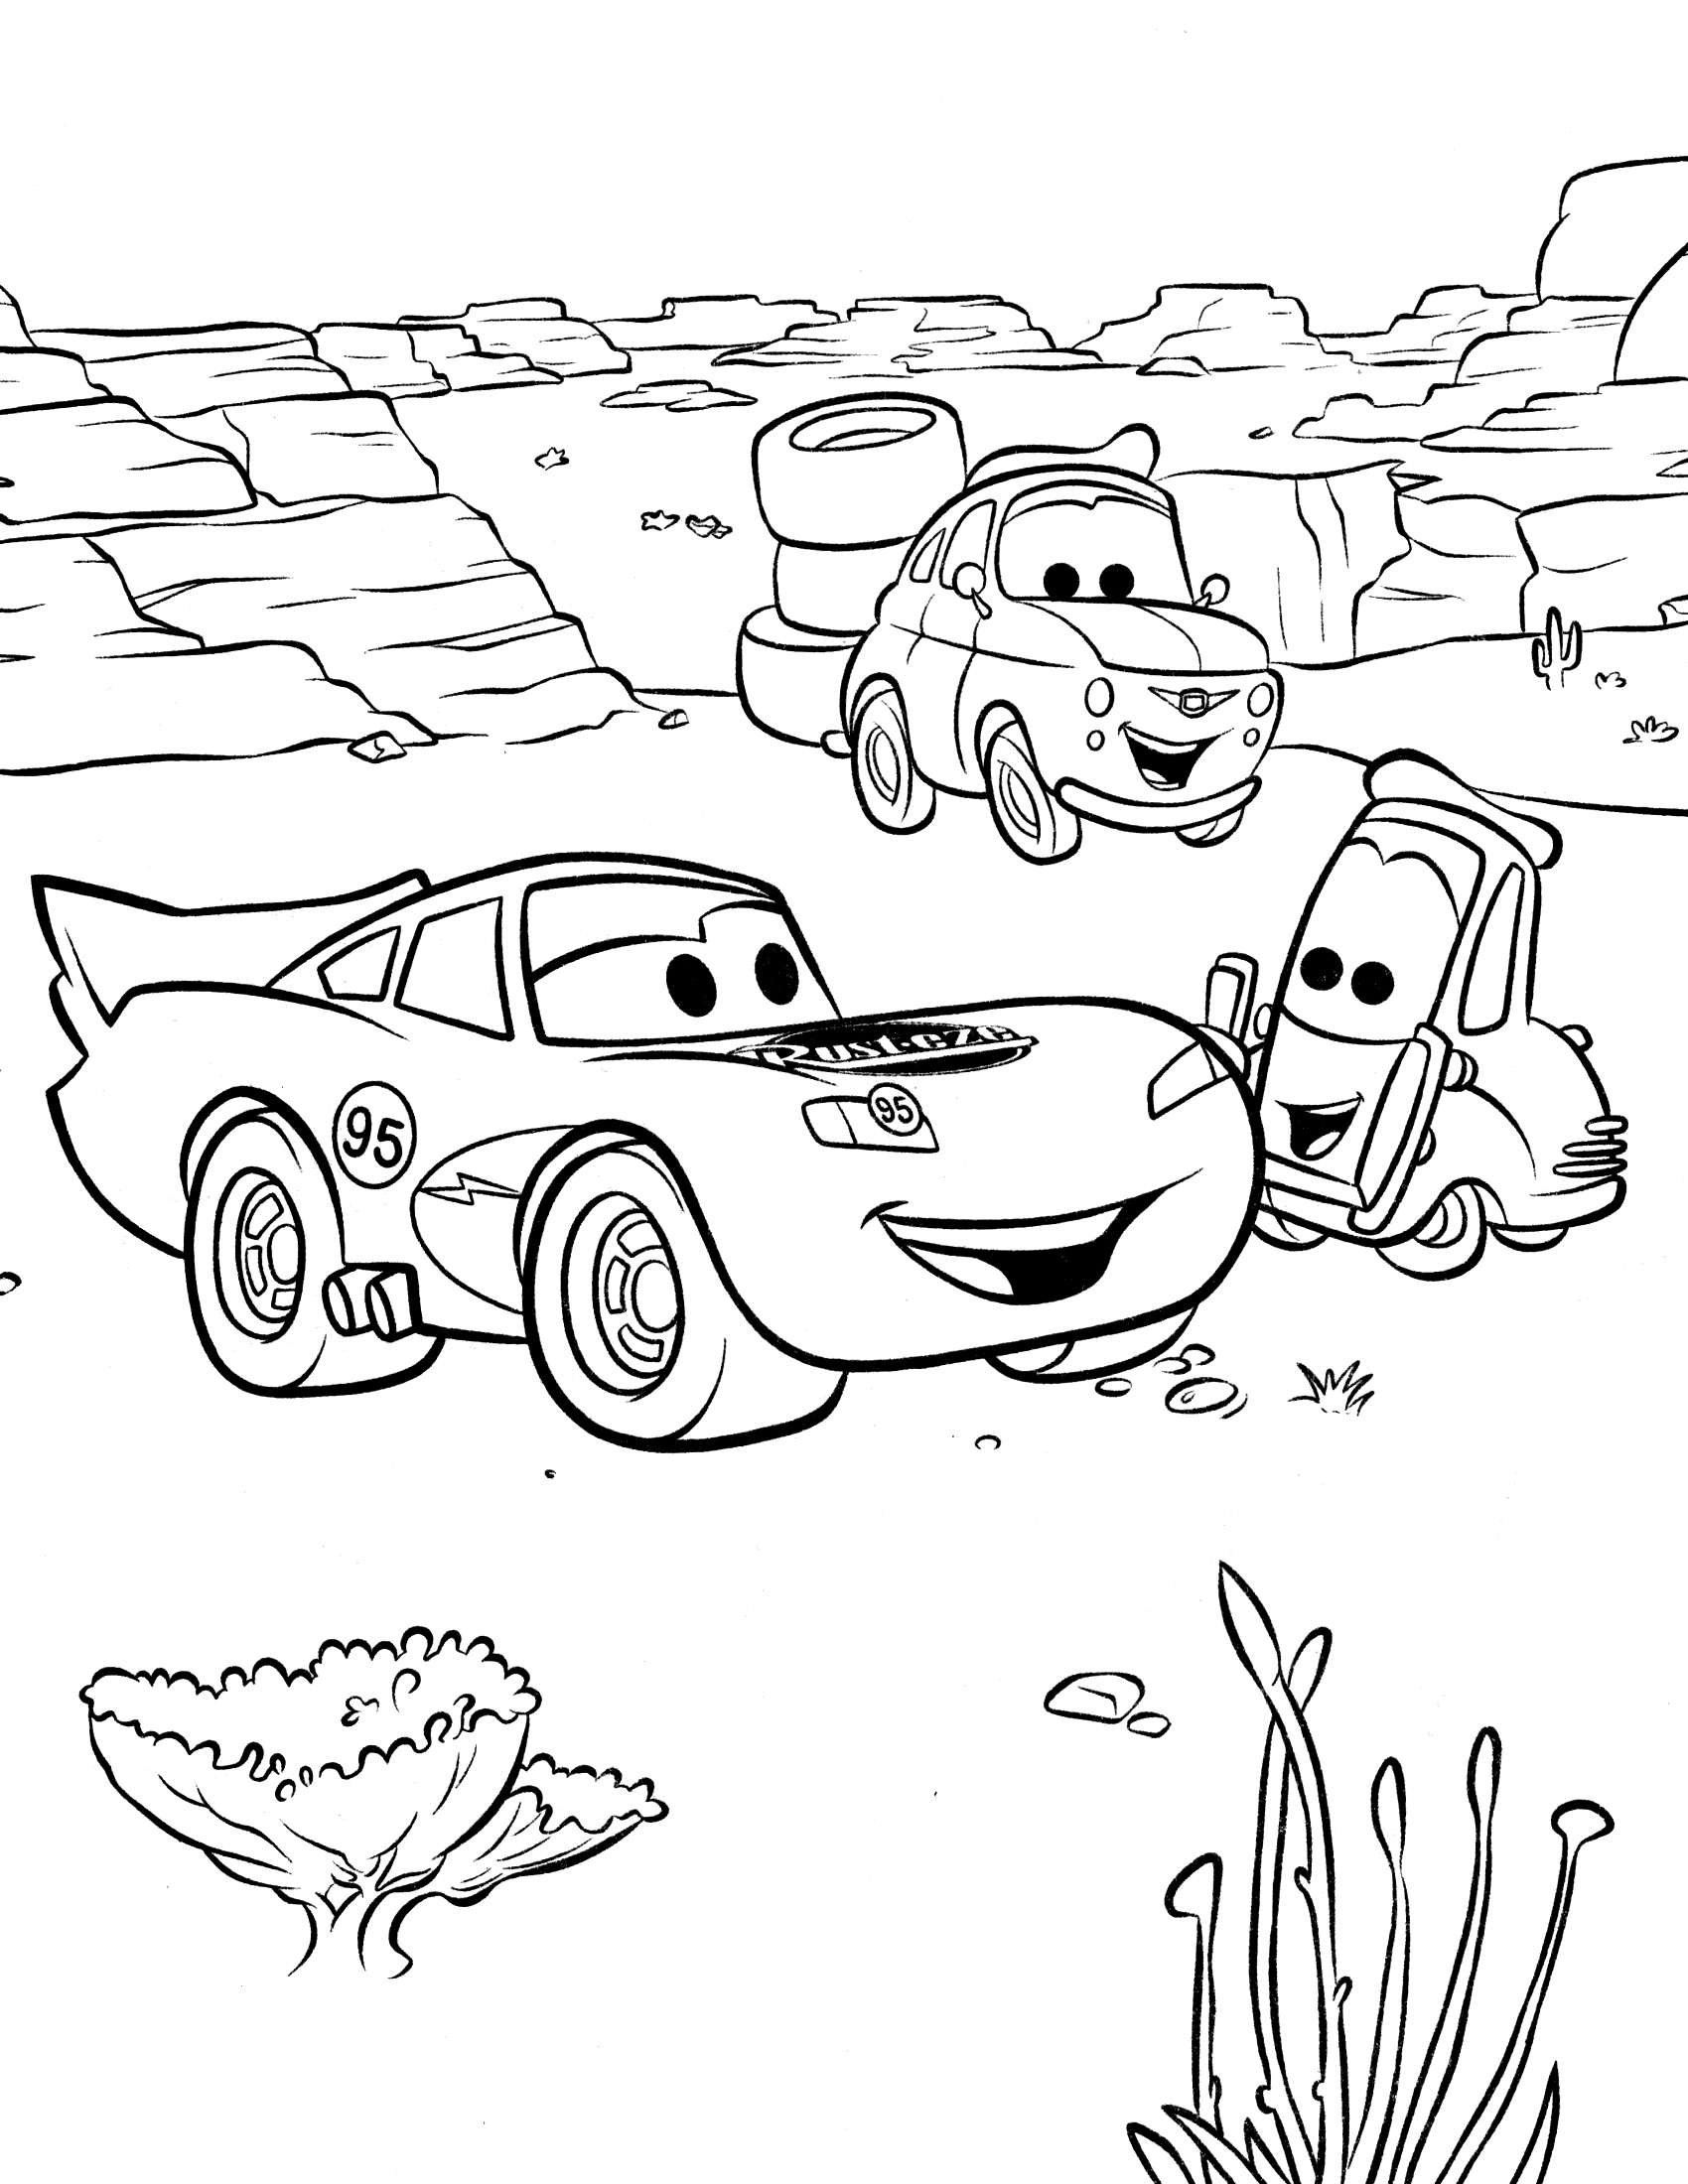 Cars the Movie Coloring Pages Elegant Cars Movie Printable Coloring Collection Of Car Coloring Pages Disney Cars the Movie to Print Grig3 Download